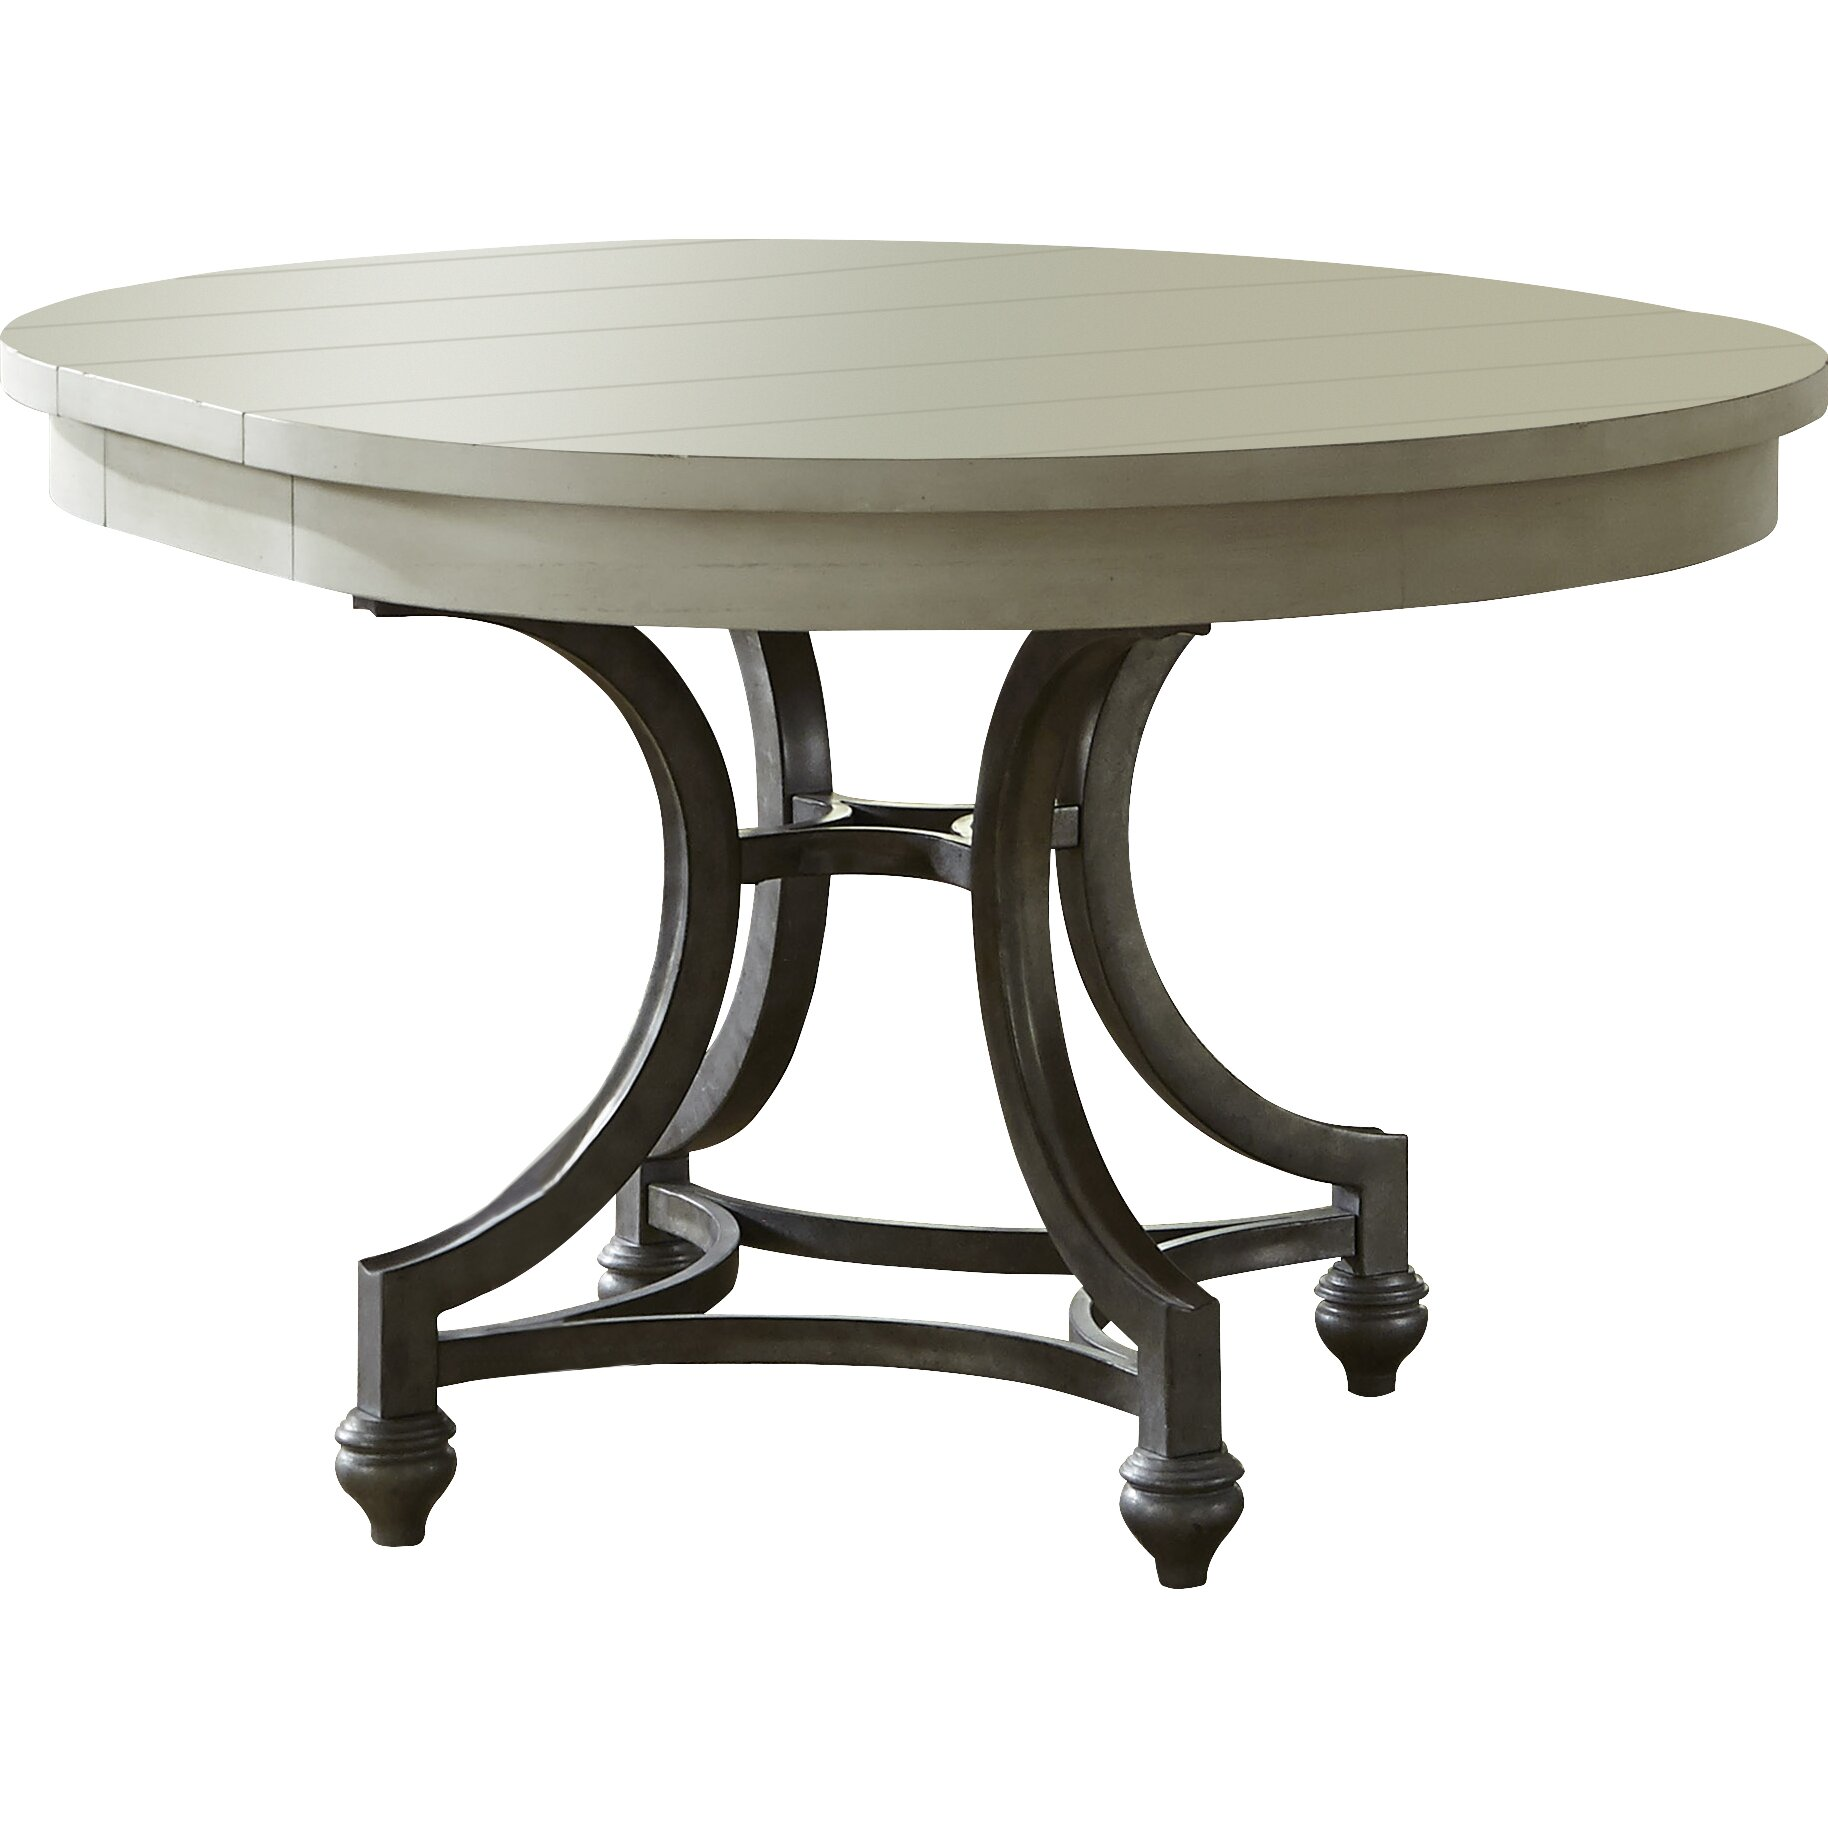 Beachcrest Home Stamford Round Dining Table amp Reviews  : Beachcrest Home Stamford Round Dining Table from www.wayfair.com size 1828 x 1828 jpeg 223kB